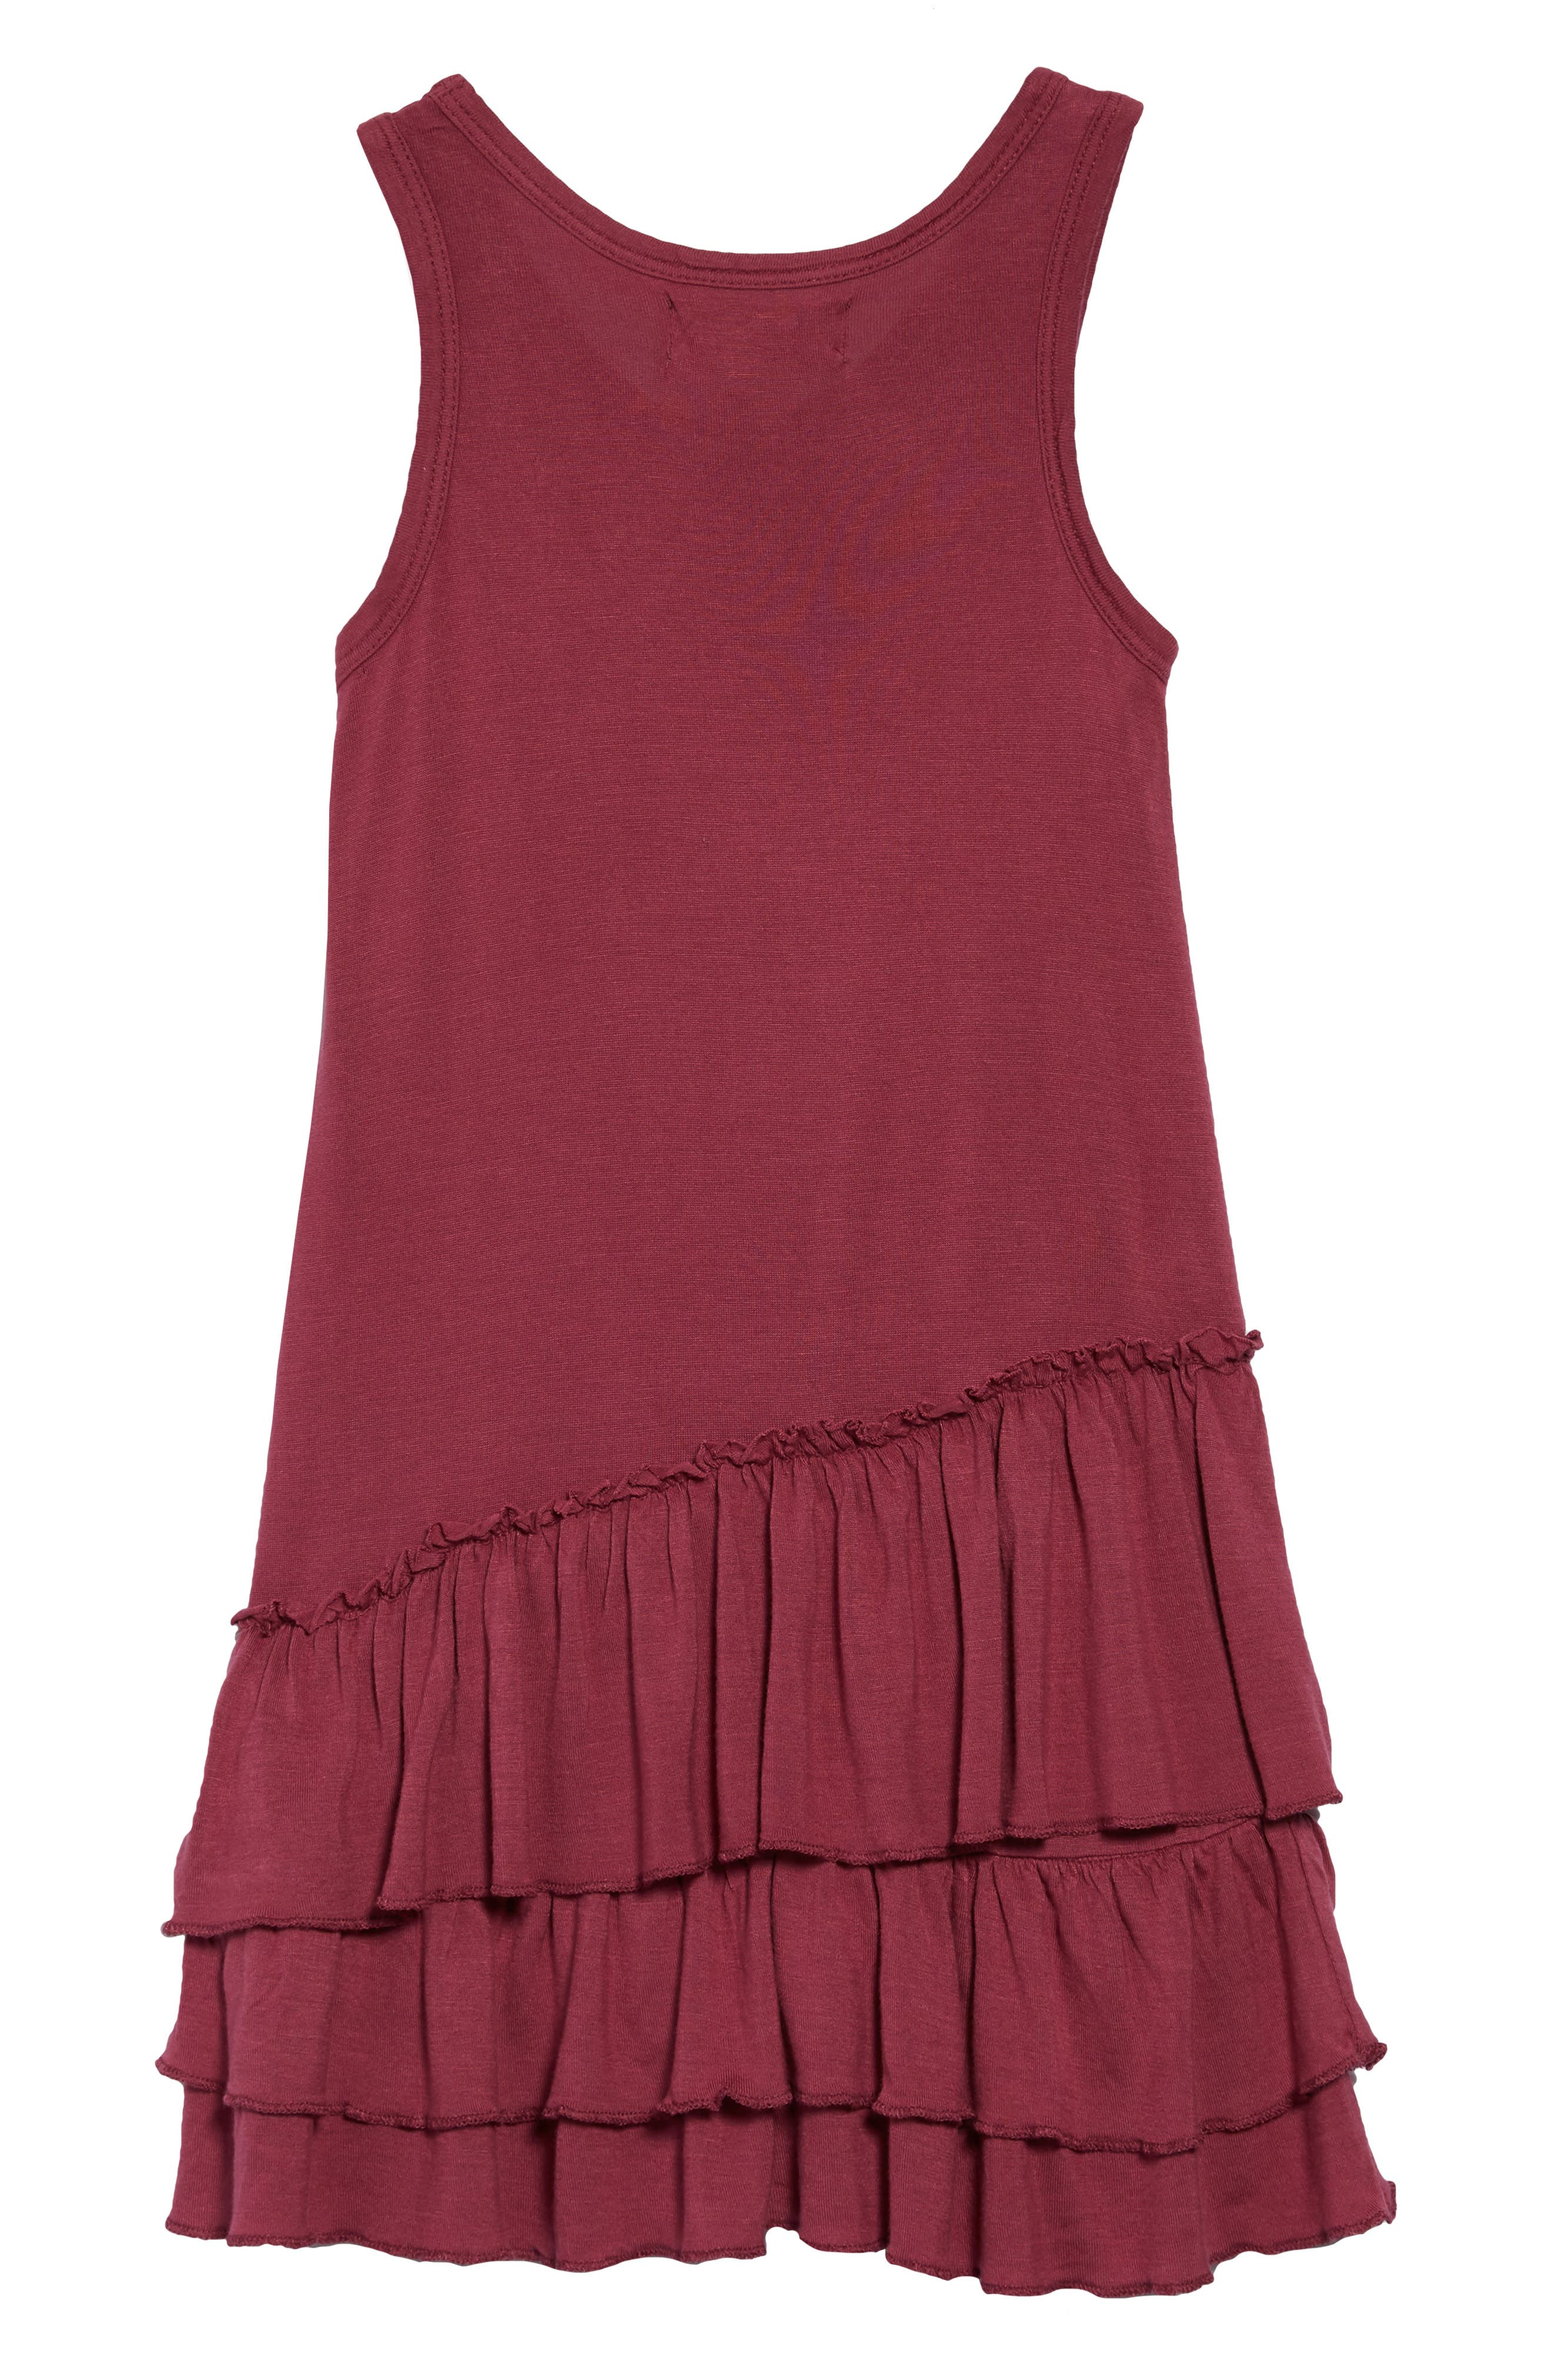 Tiered Tank Dress,                             Alternate thumbnail 2, color,                             Maroon